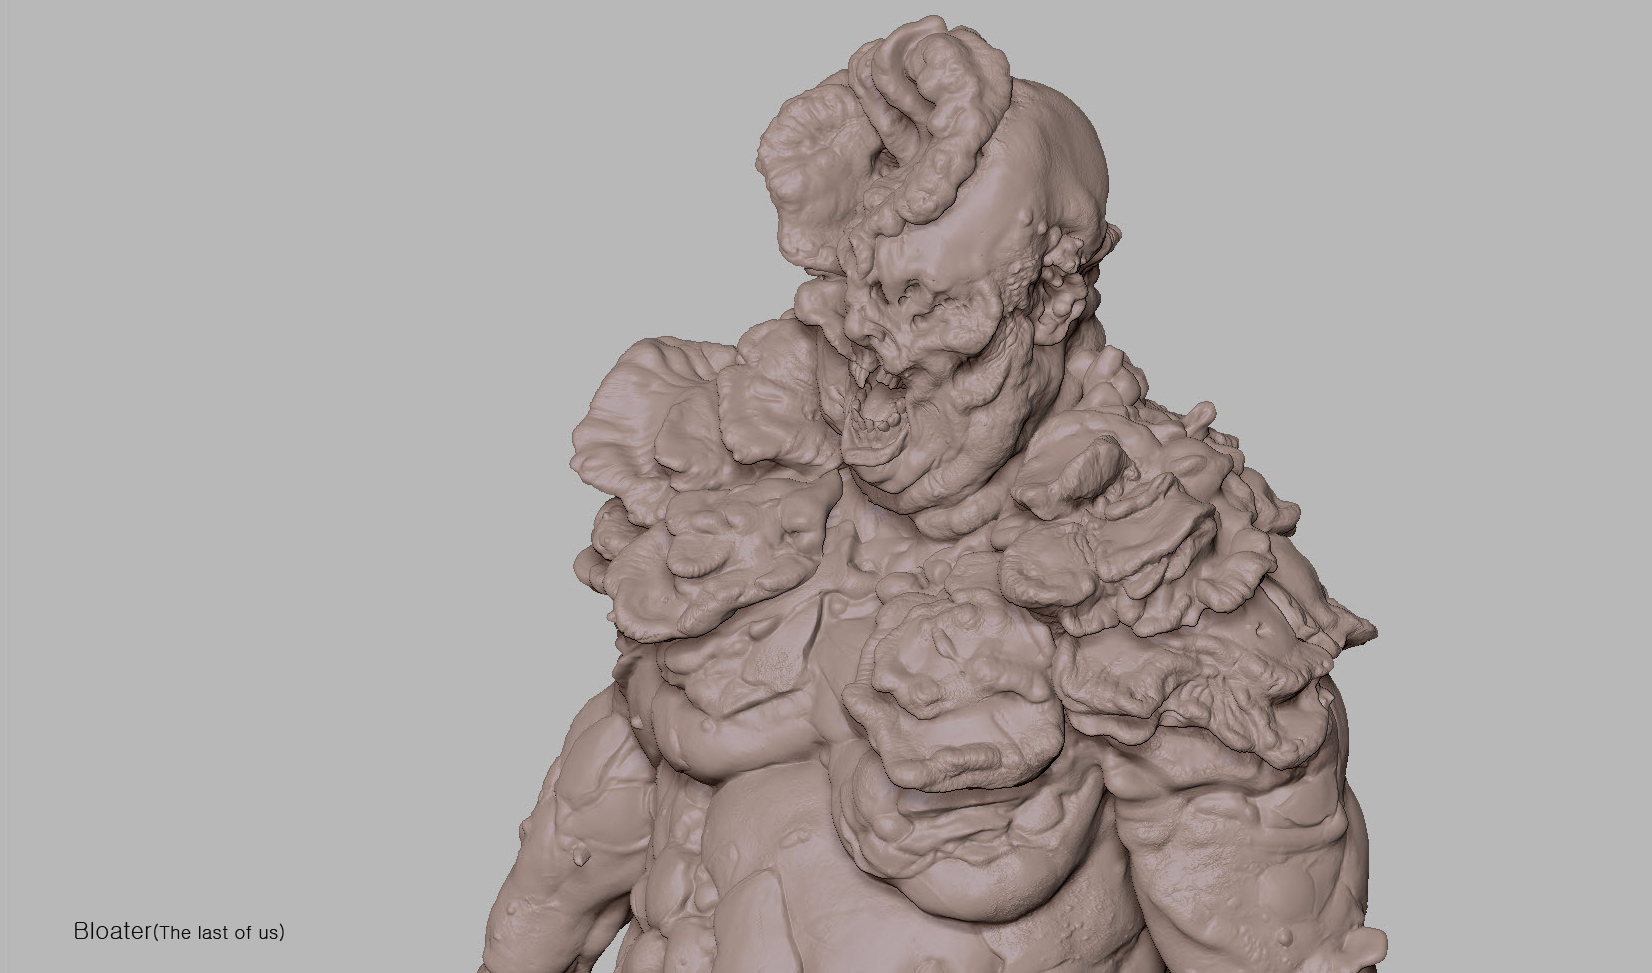 Third Bloater sculpt image